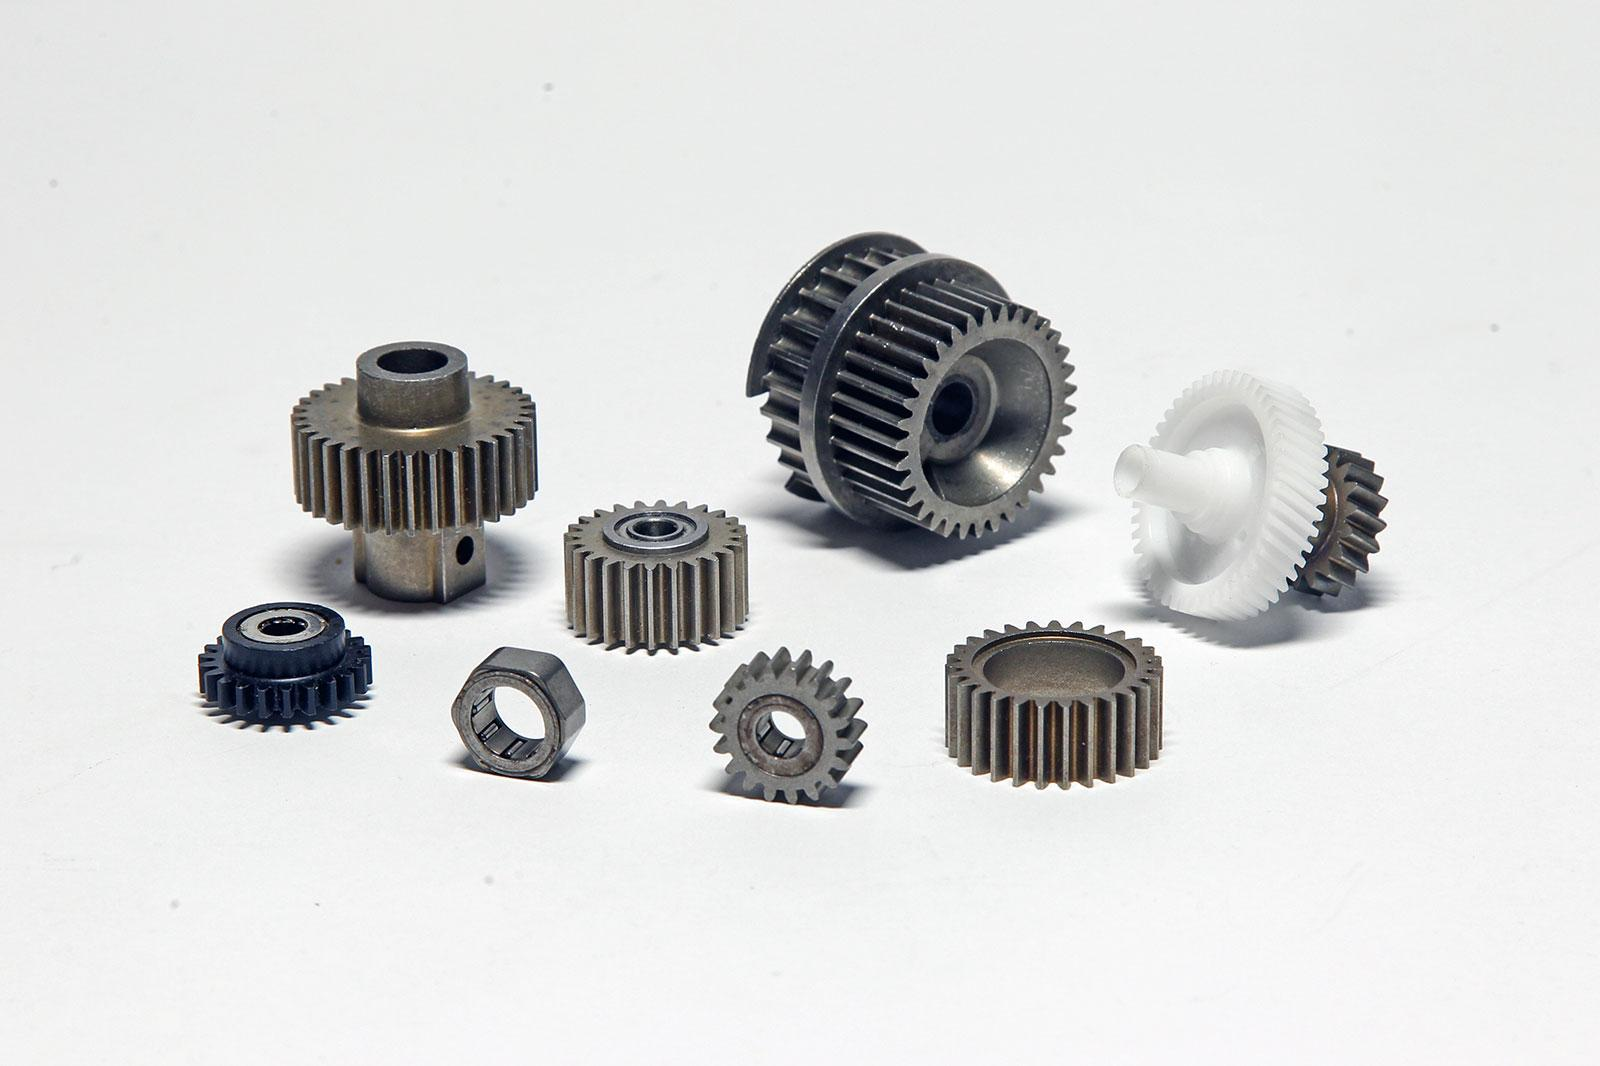 Seitz metal and plastic gear and drive components